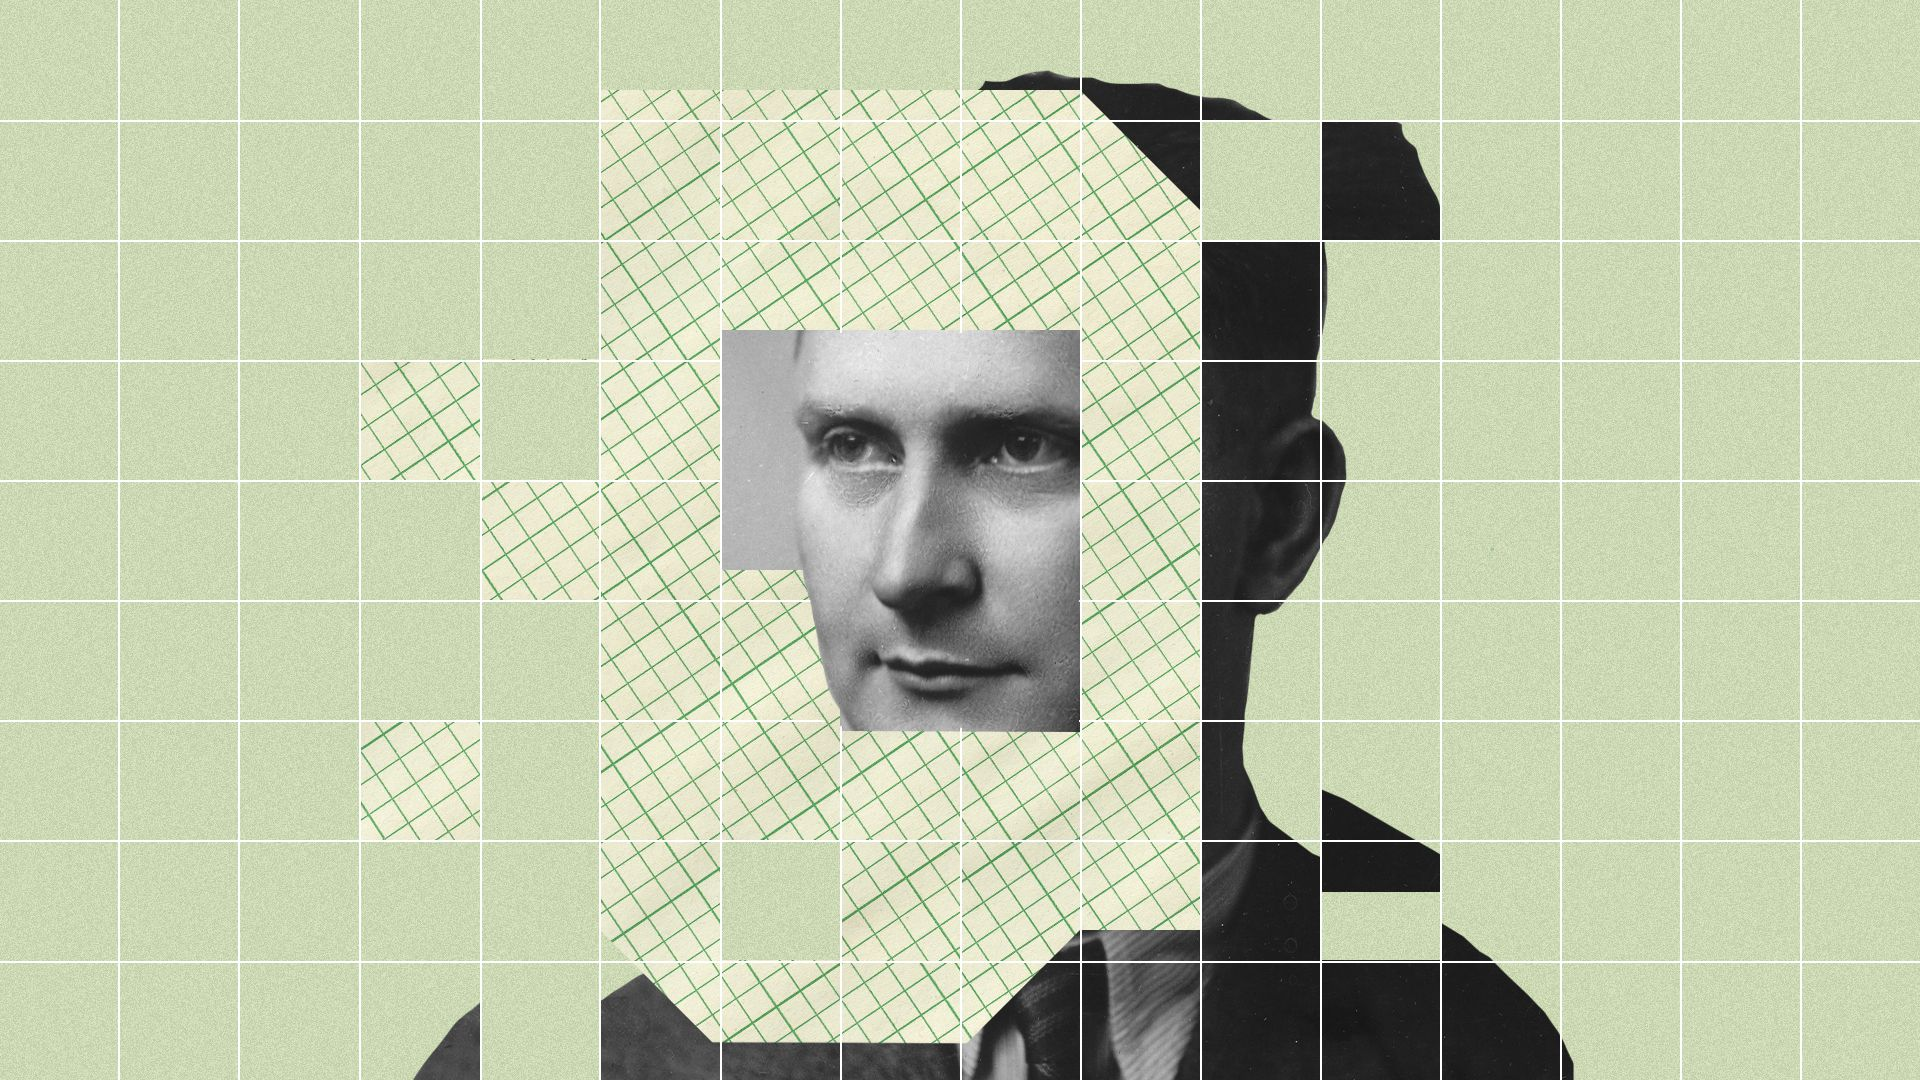 Illustrated collage of a man being revealed from behind graph paper.